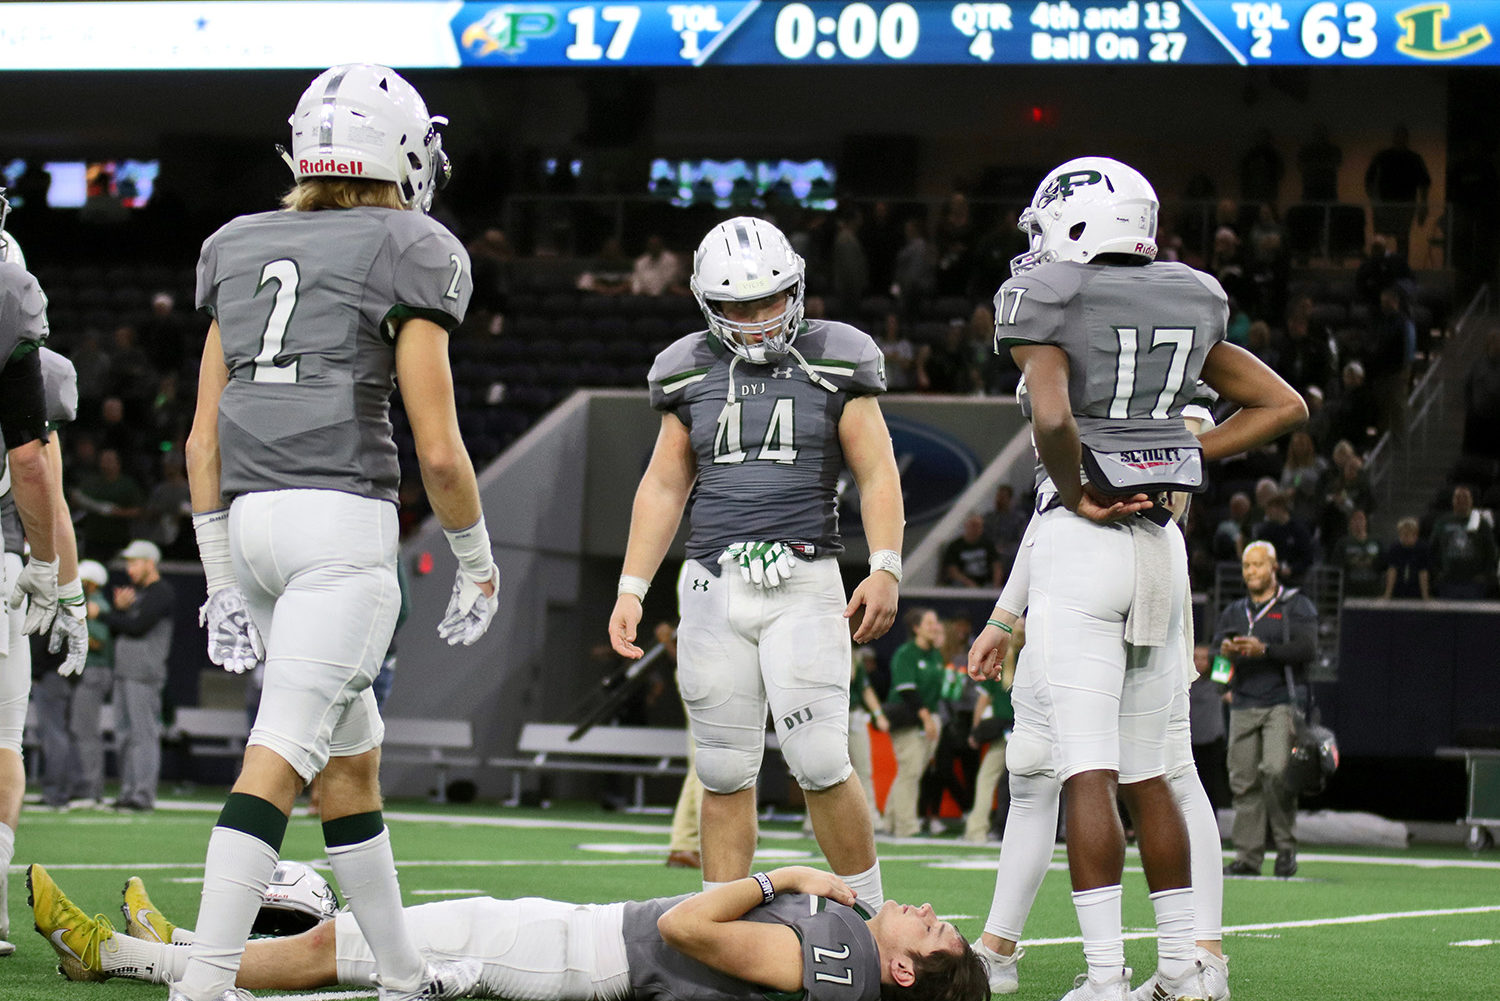 Senior kicker Cade York, No. 27, lays on the turf to reflect on his last football game as a Prosper Eagle. Fellow teammates Derien Ivy, No. 2, Aidan Sciano, No. 44, and Tyler Bailey, No. 17, gather around York. The Eagles fell 63-17 to the Longview Lobos Saturday night at The Star in Frisco.